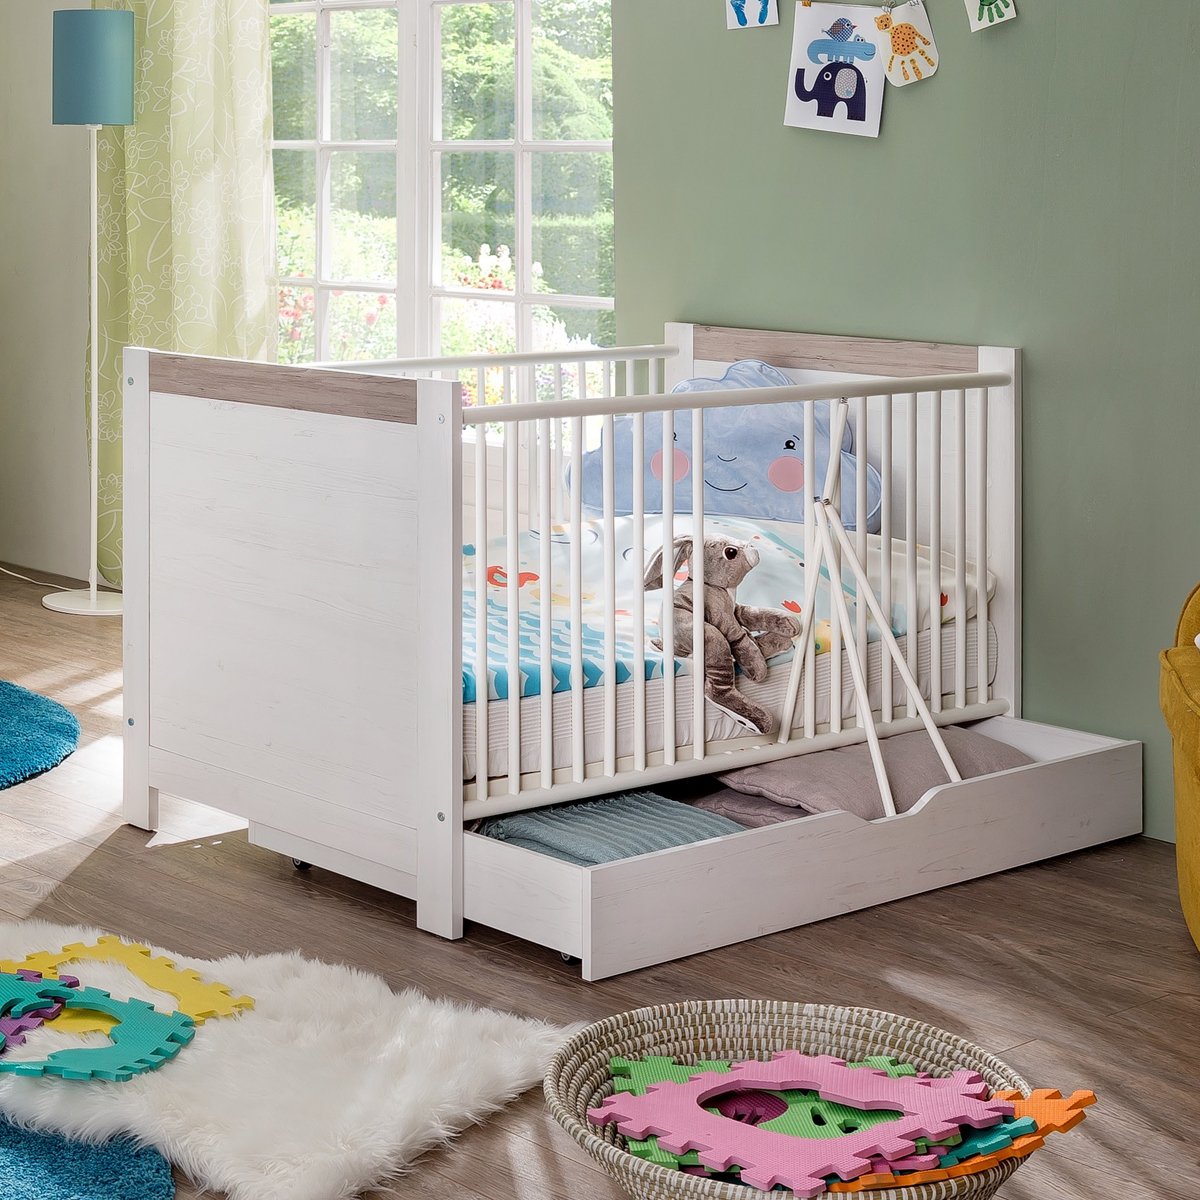 babybett nils gitterbett in pinie struktur wei kinderbett babyzimmer eur 238 95 picclick de. Black Bedroom Furniture Sets. Home Design Ideas